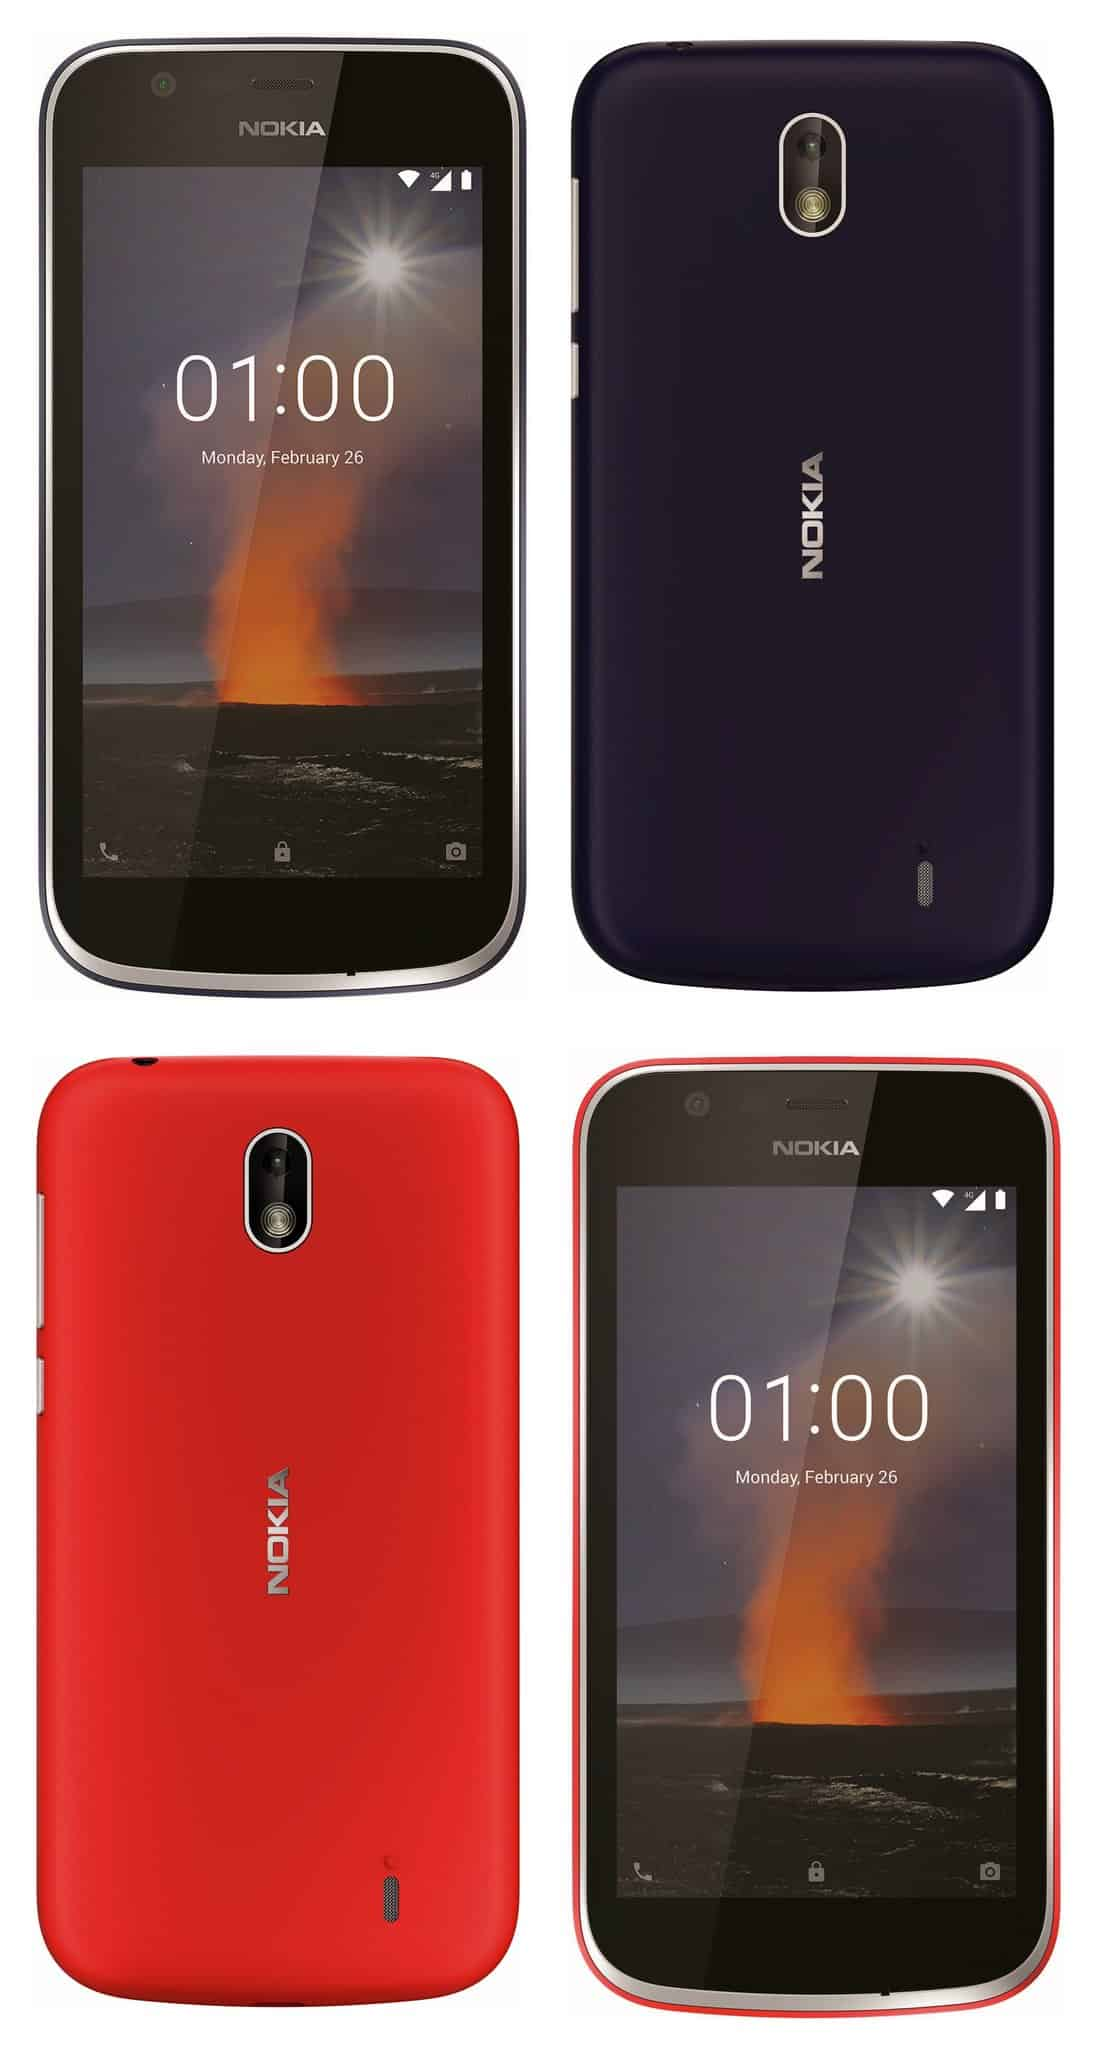 Nokia 1 in Red and Black color